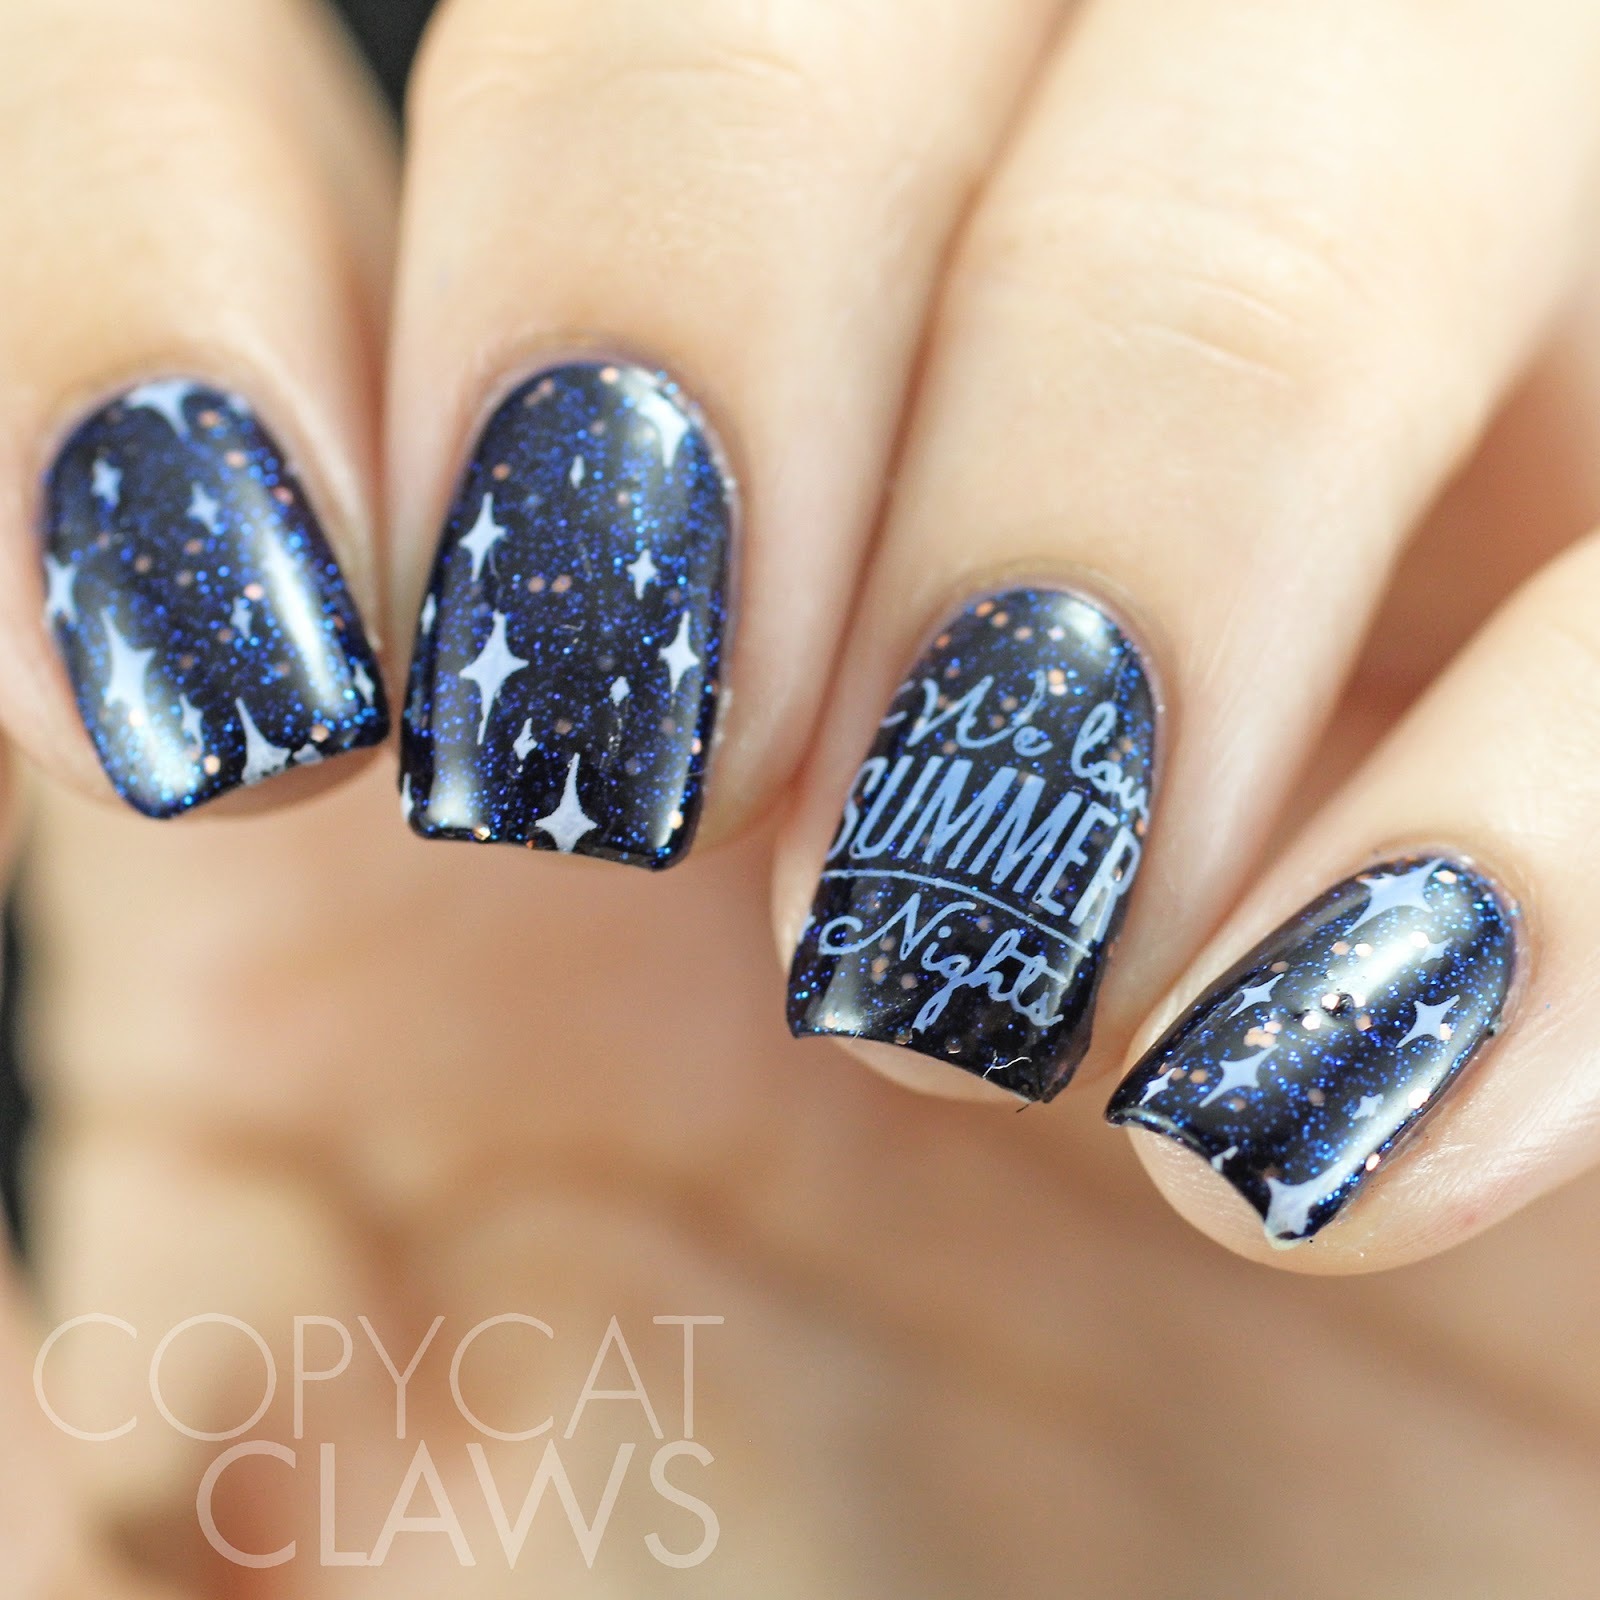 Copycat Claws: HPB Presents Summer Night Sky Nail Art